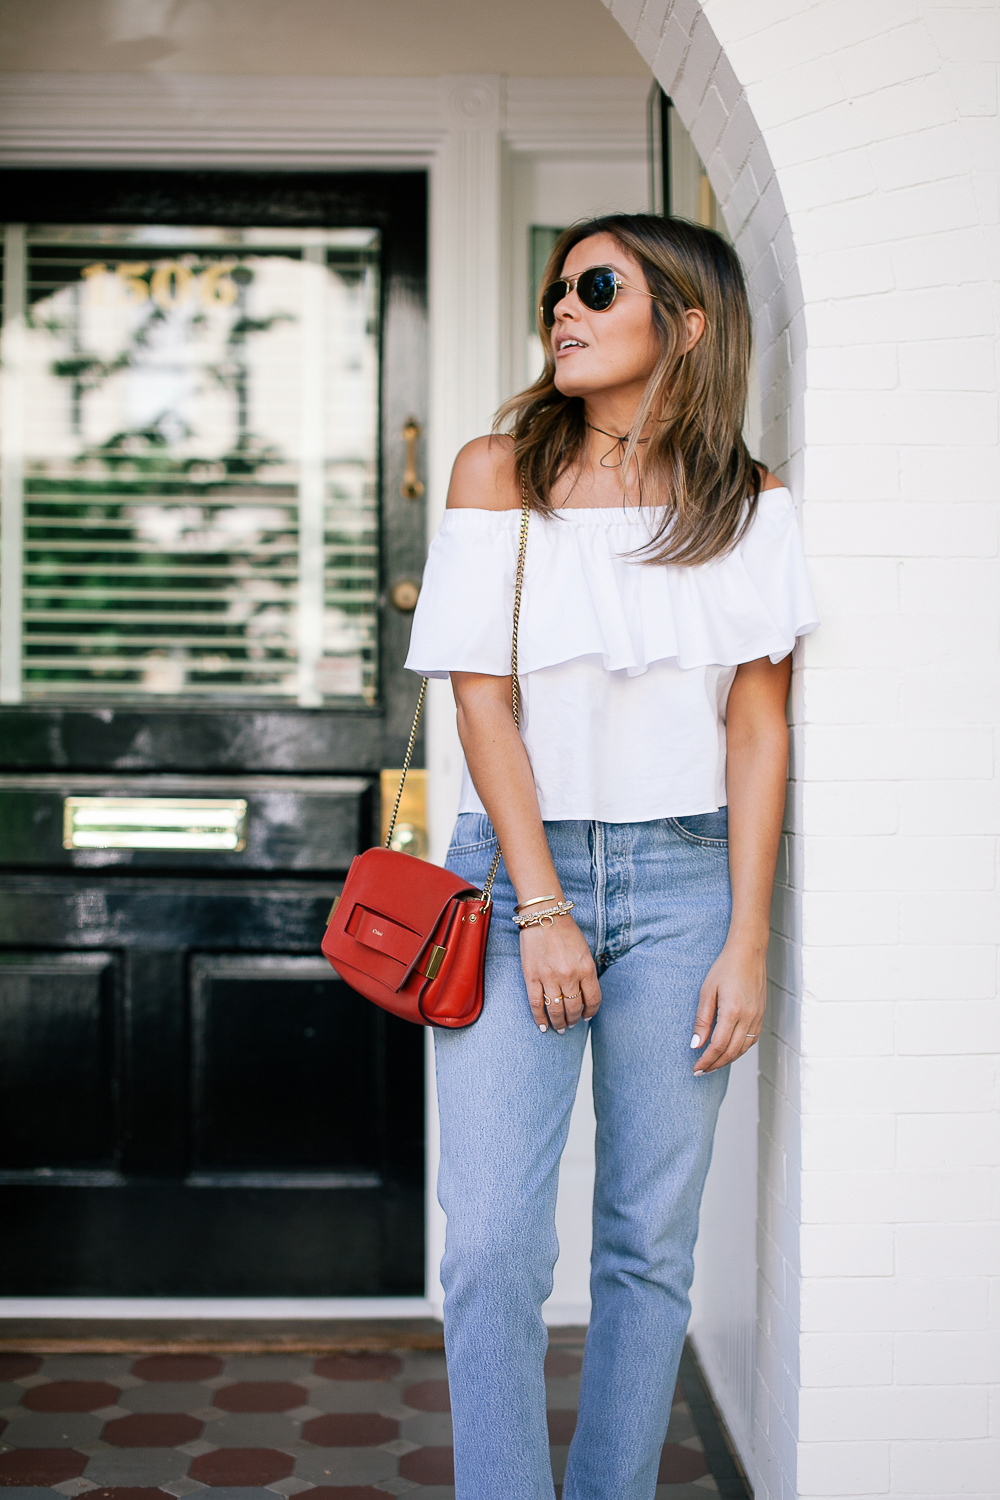 Style MBA wears Ruffle Topshop Top